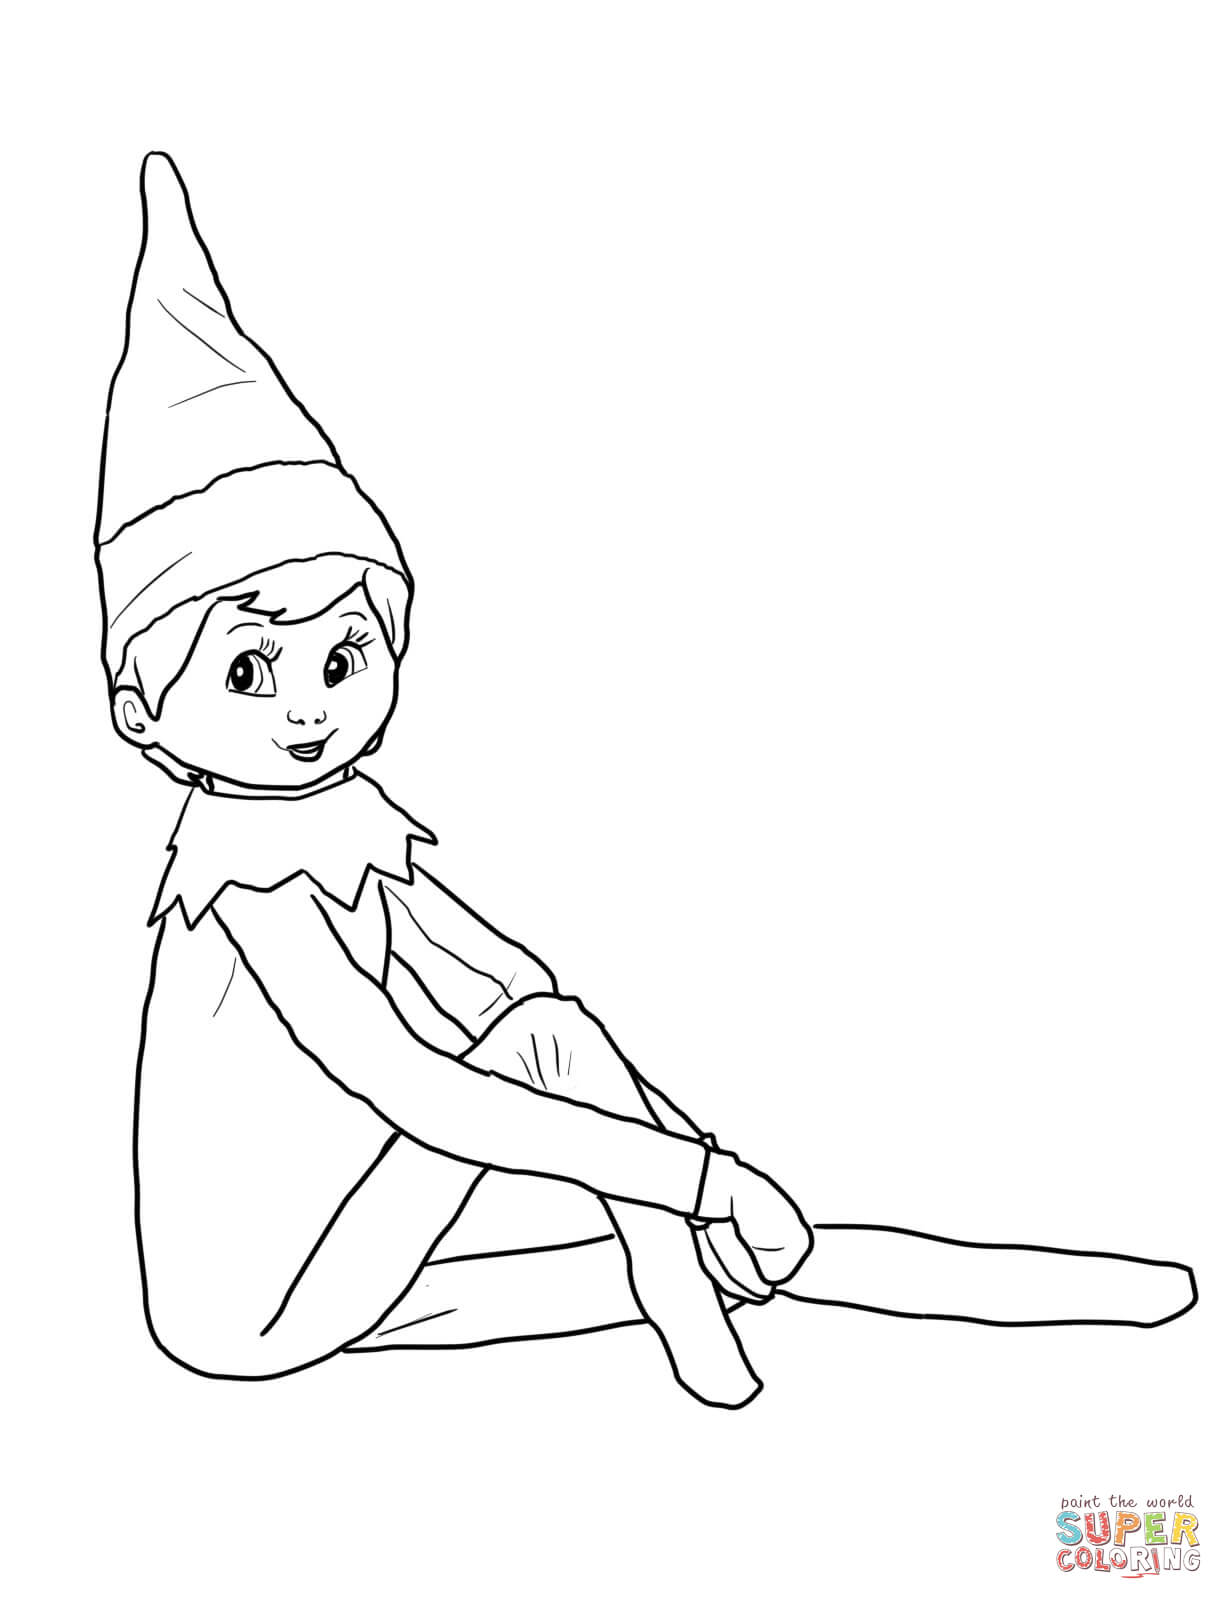 elf-on-the-shelf-coloring-page-0018-q1